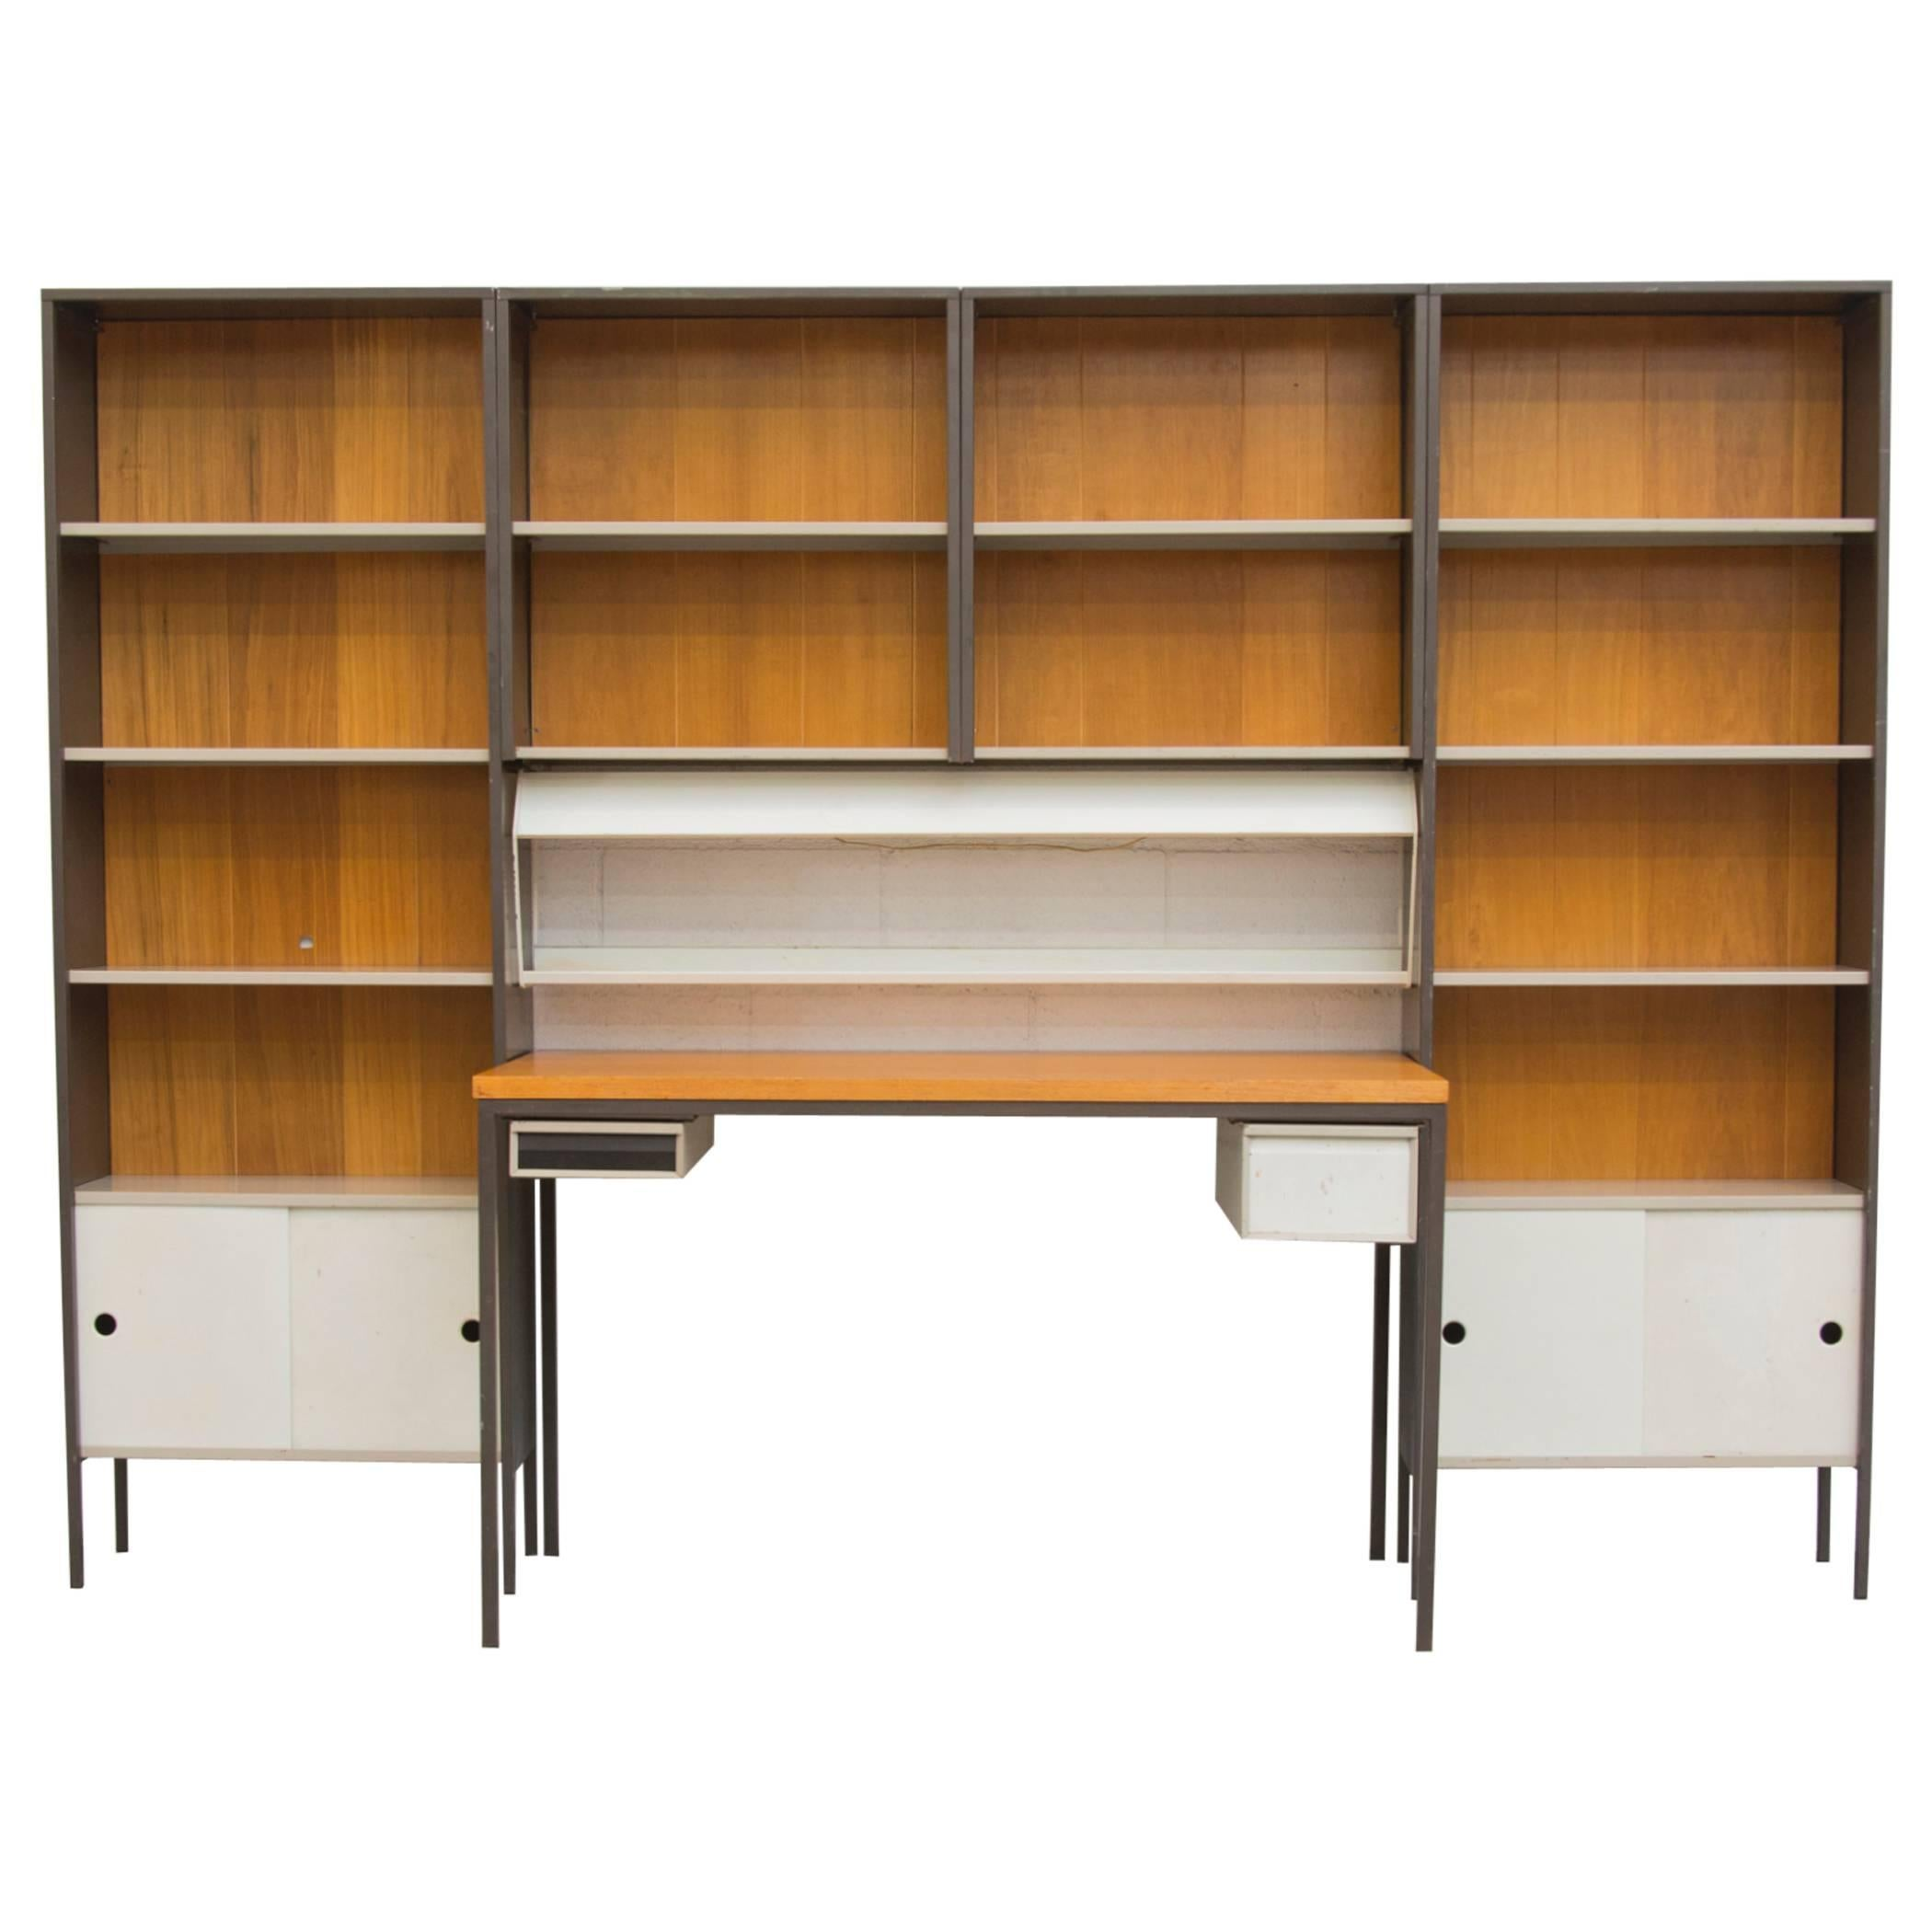 Stainless Steel Pace Wall Unit With Lacquered Burl Wood Cabinets